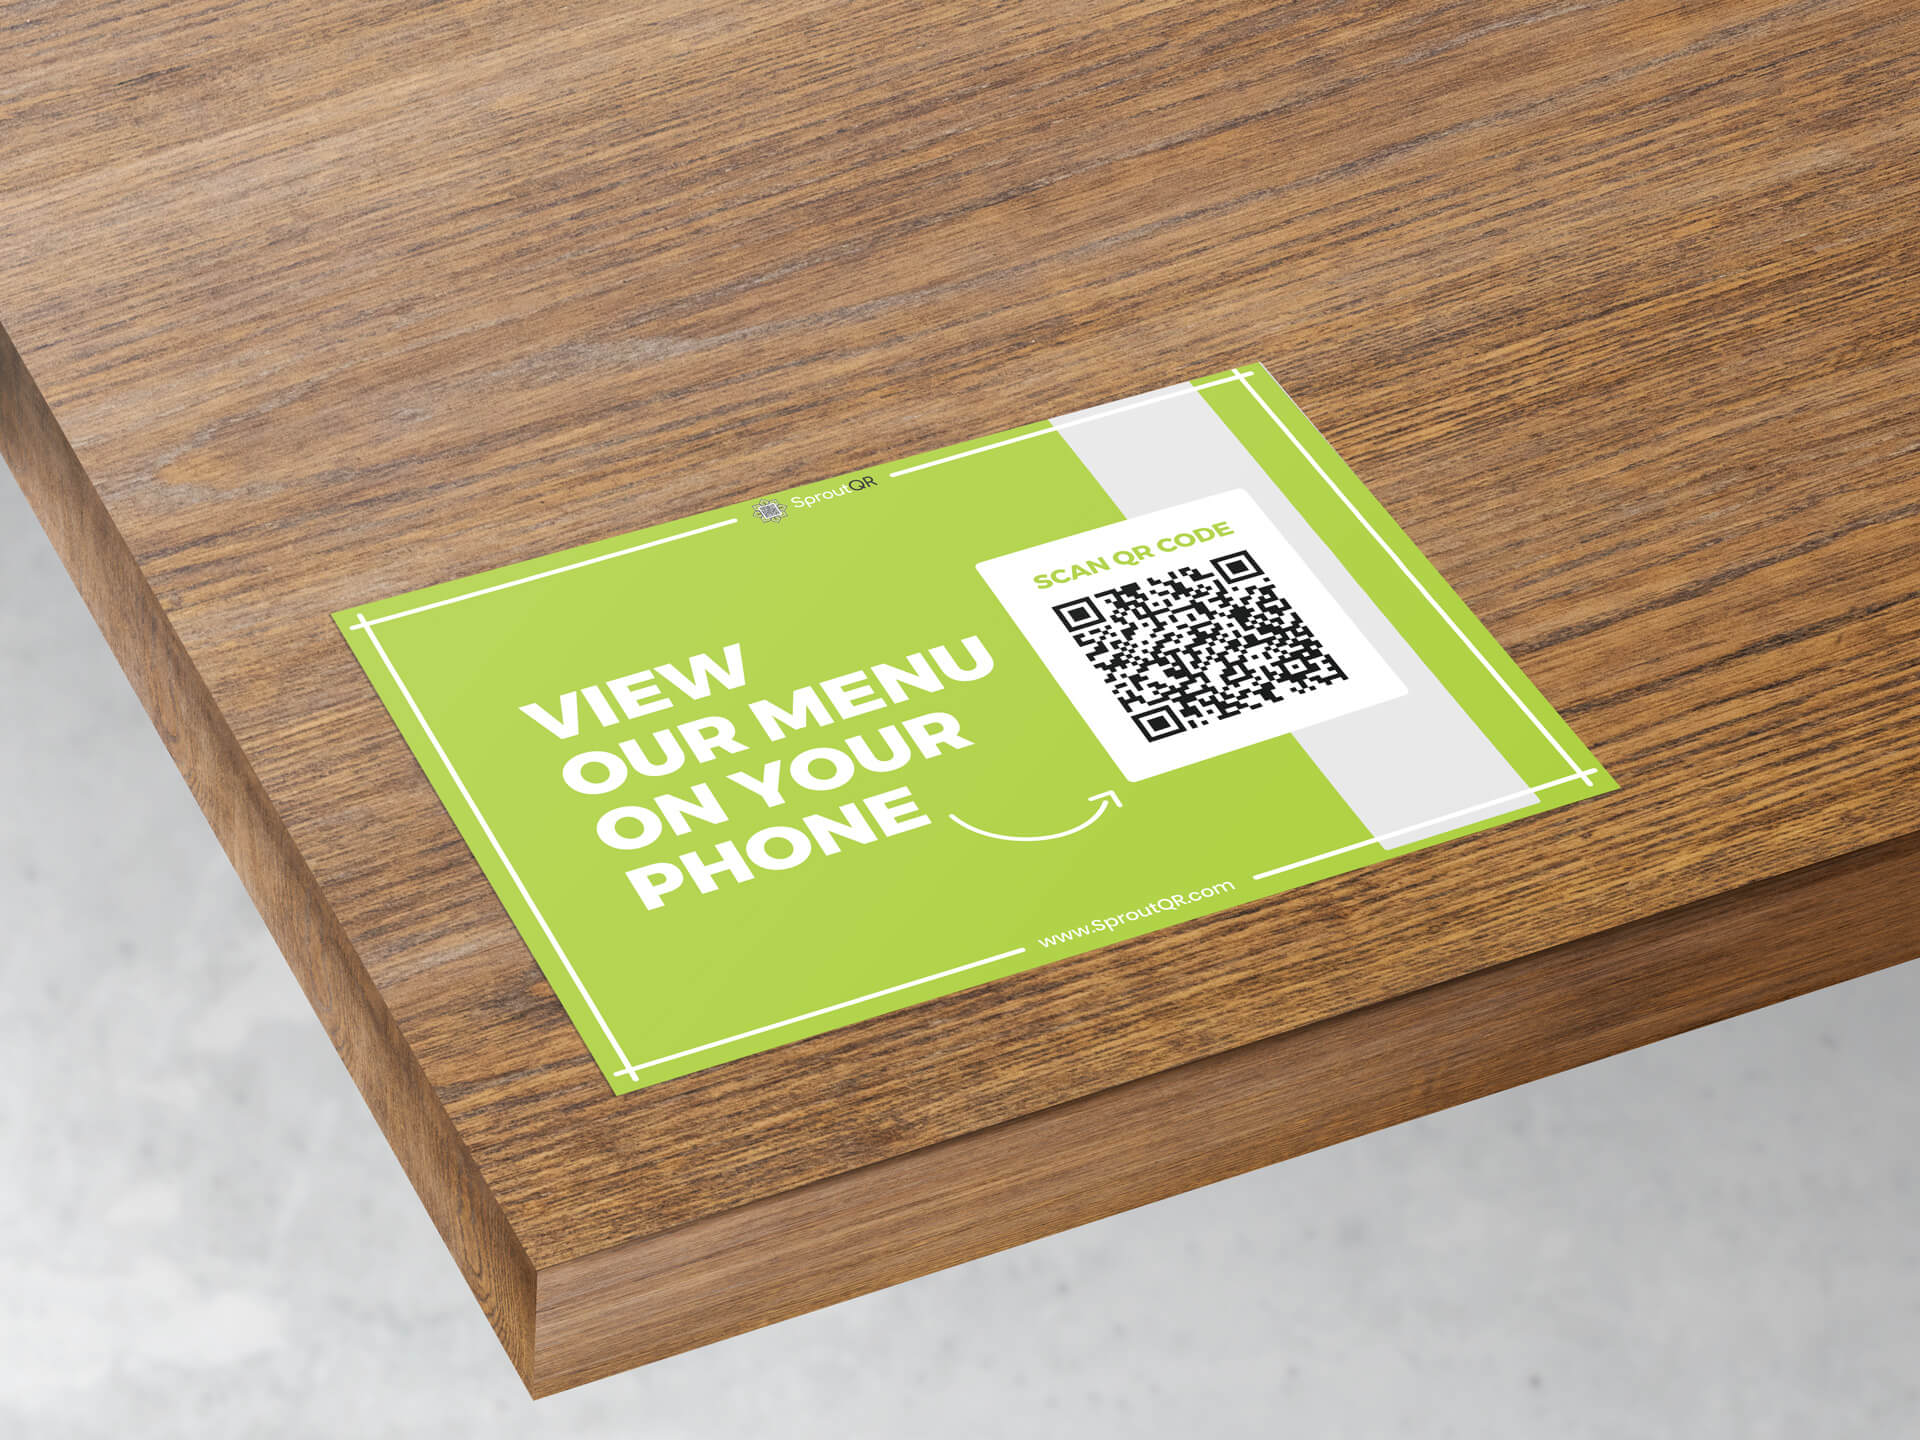 QR code on table directly